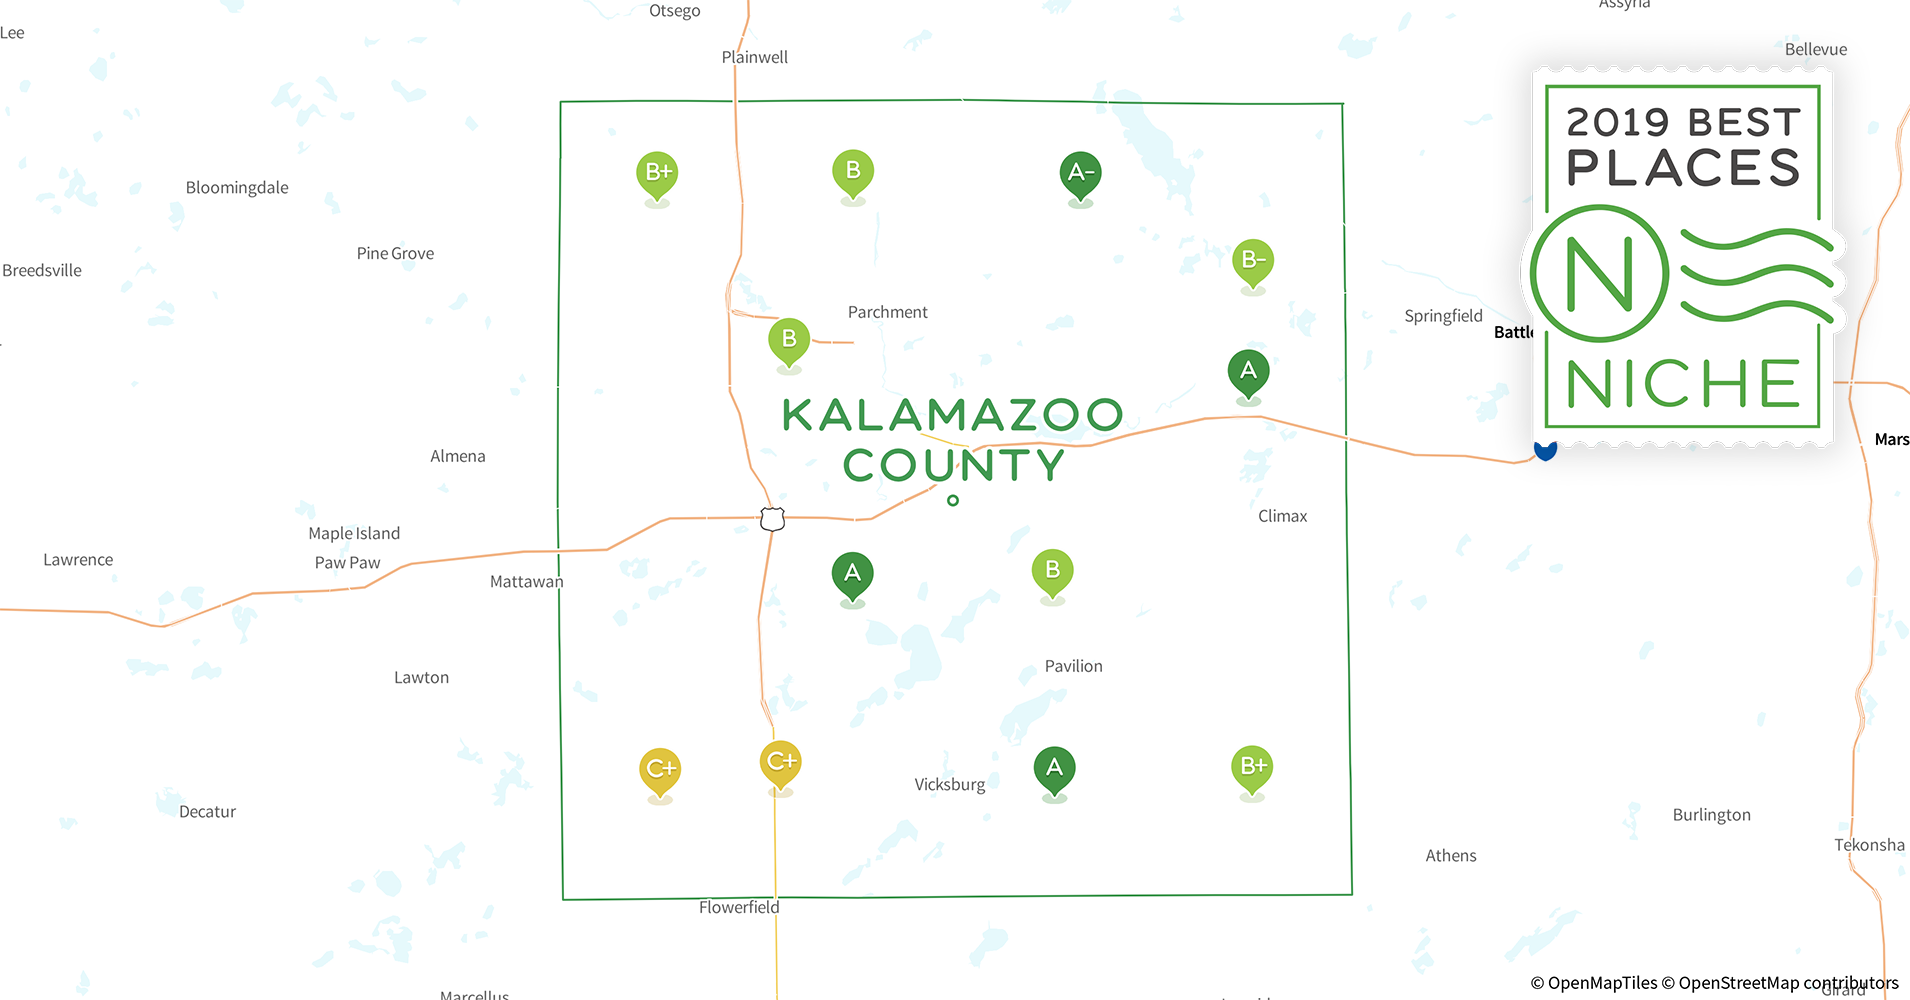 2019 Safe Places to Live in Kalamazoo County, MI - Niche